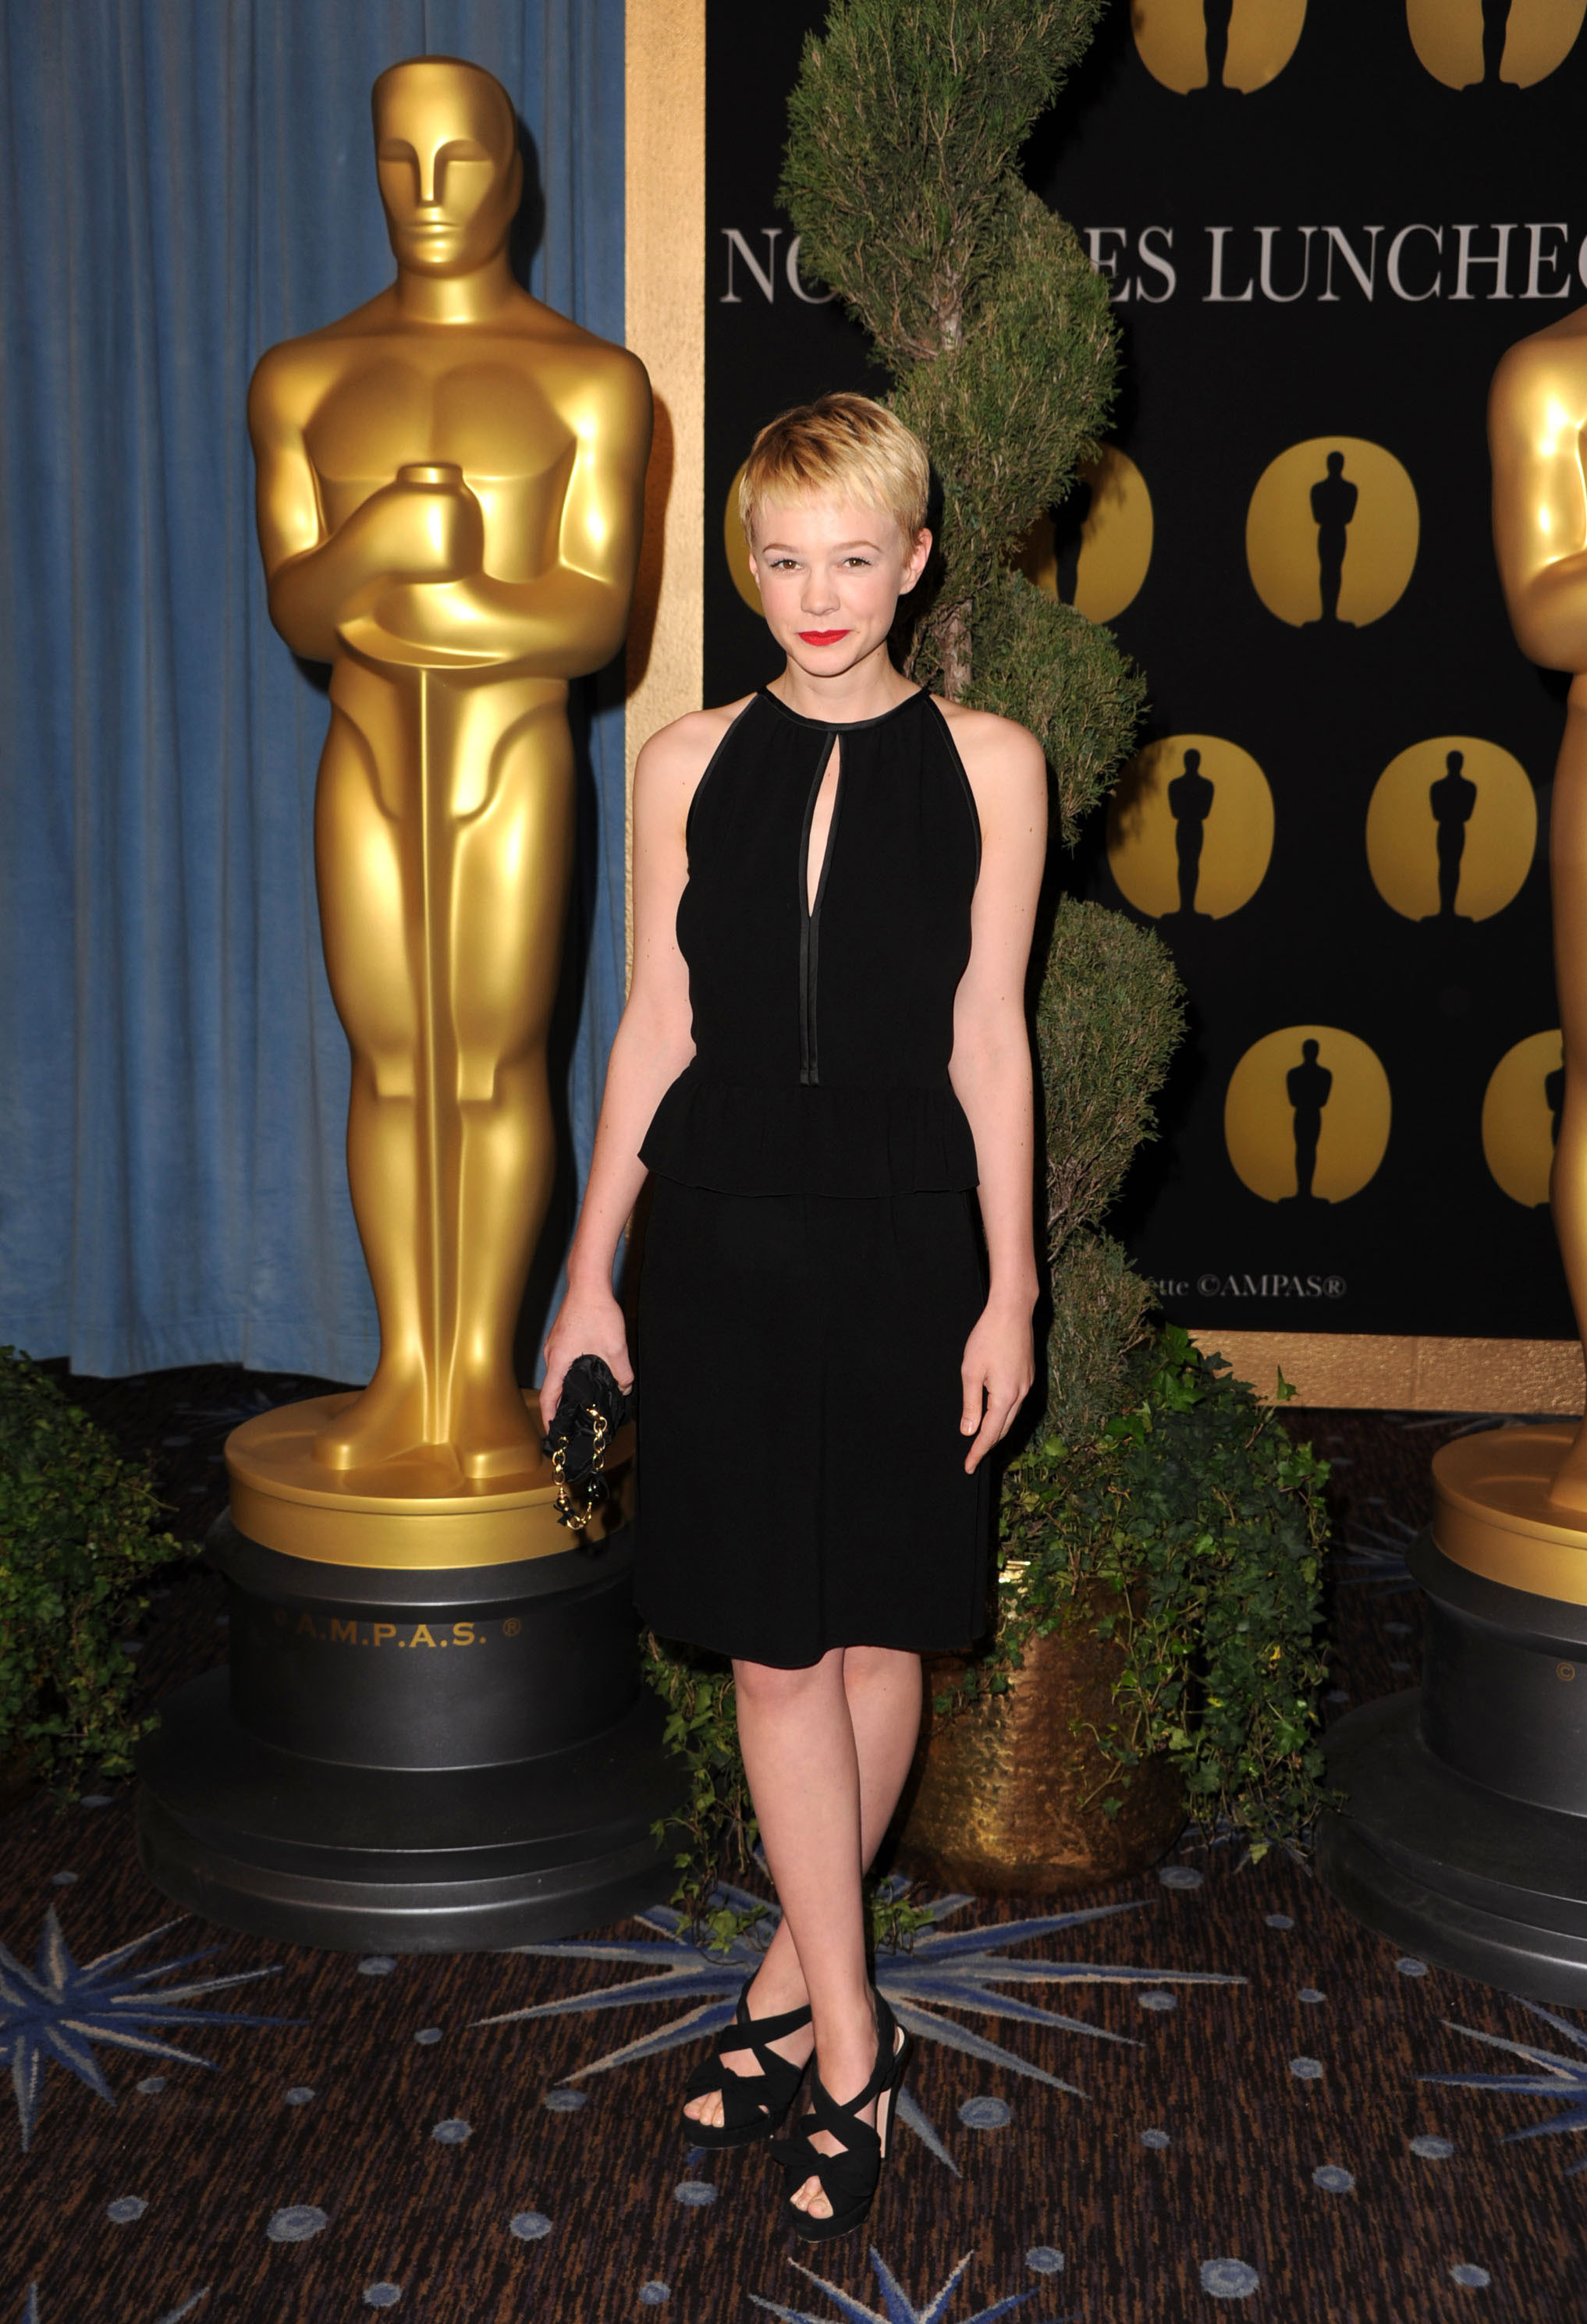 Carey Mulligan on Awards